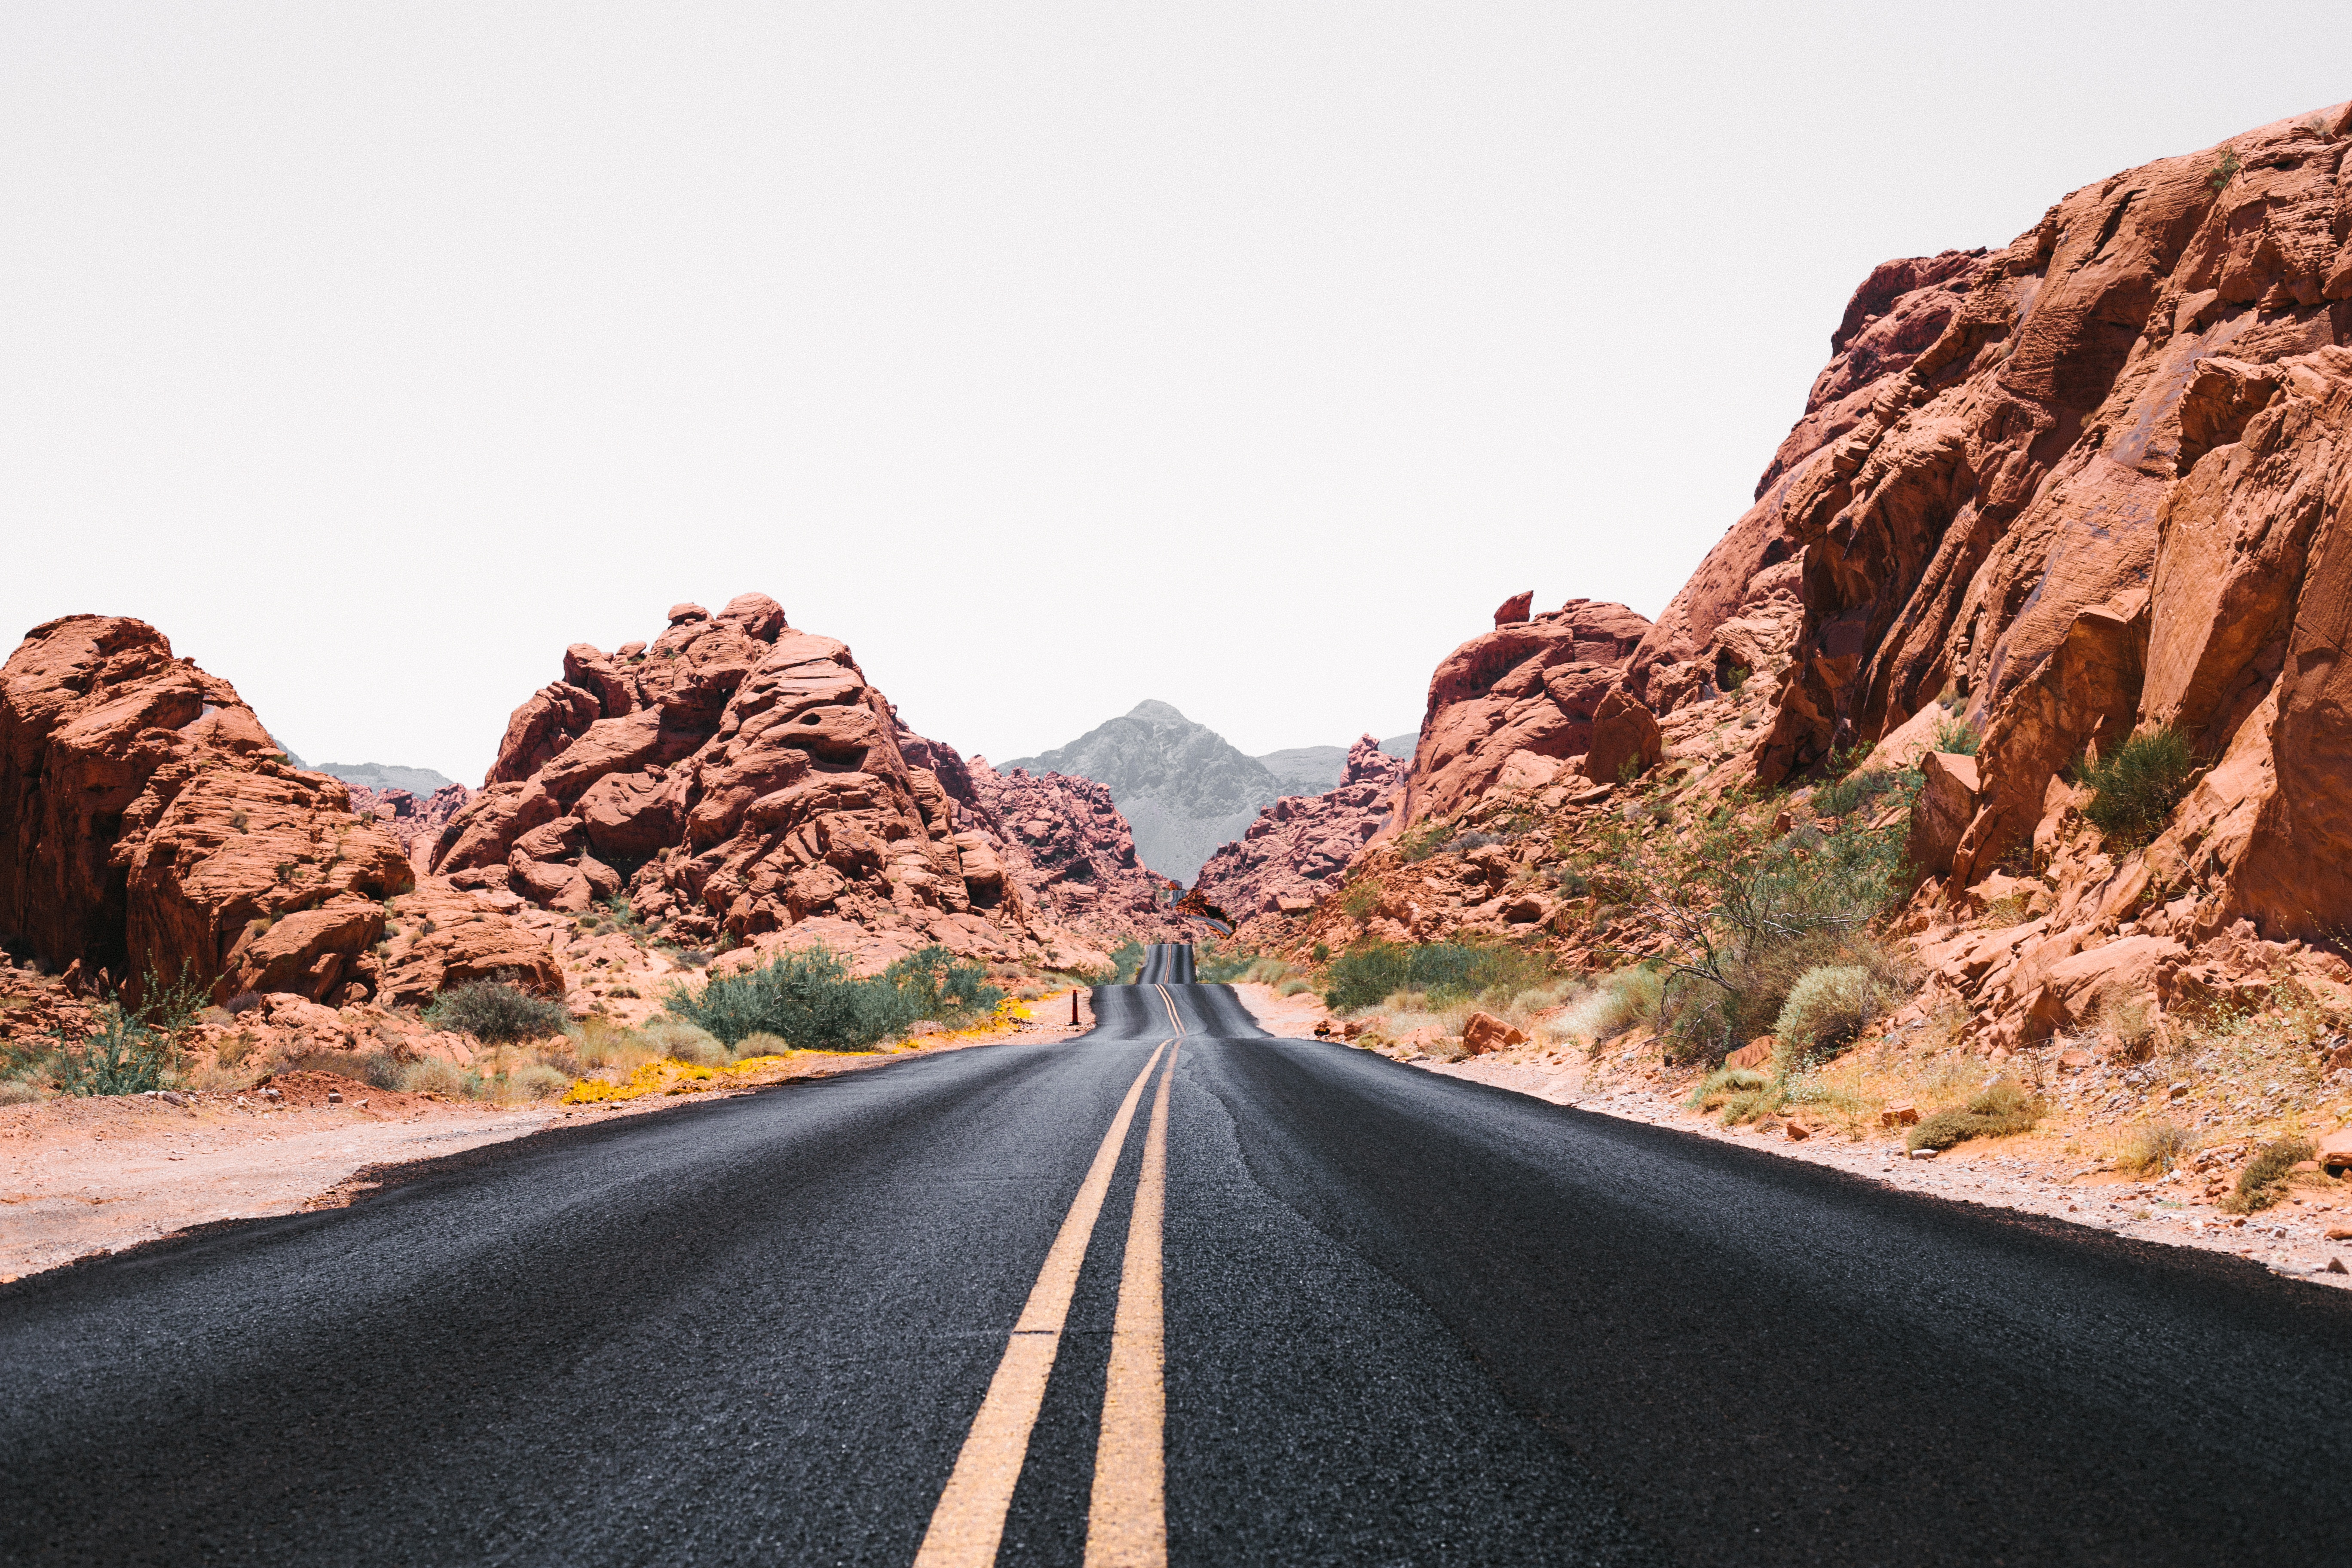 Desert Road by Red Rock Canyon